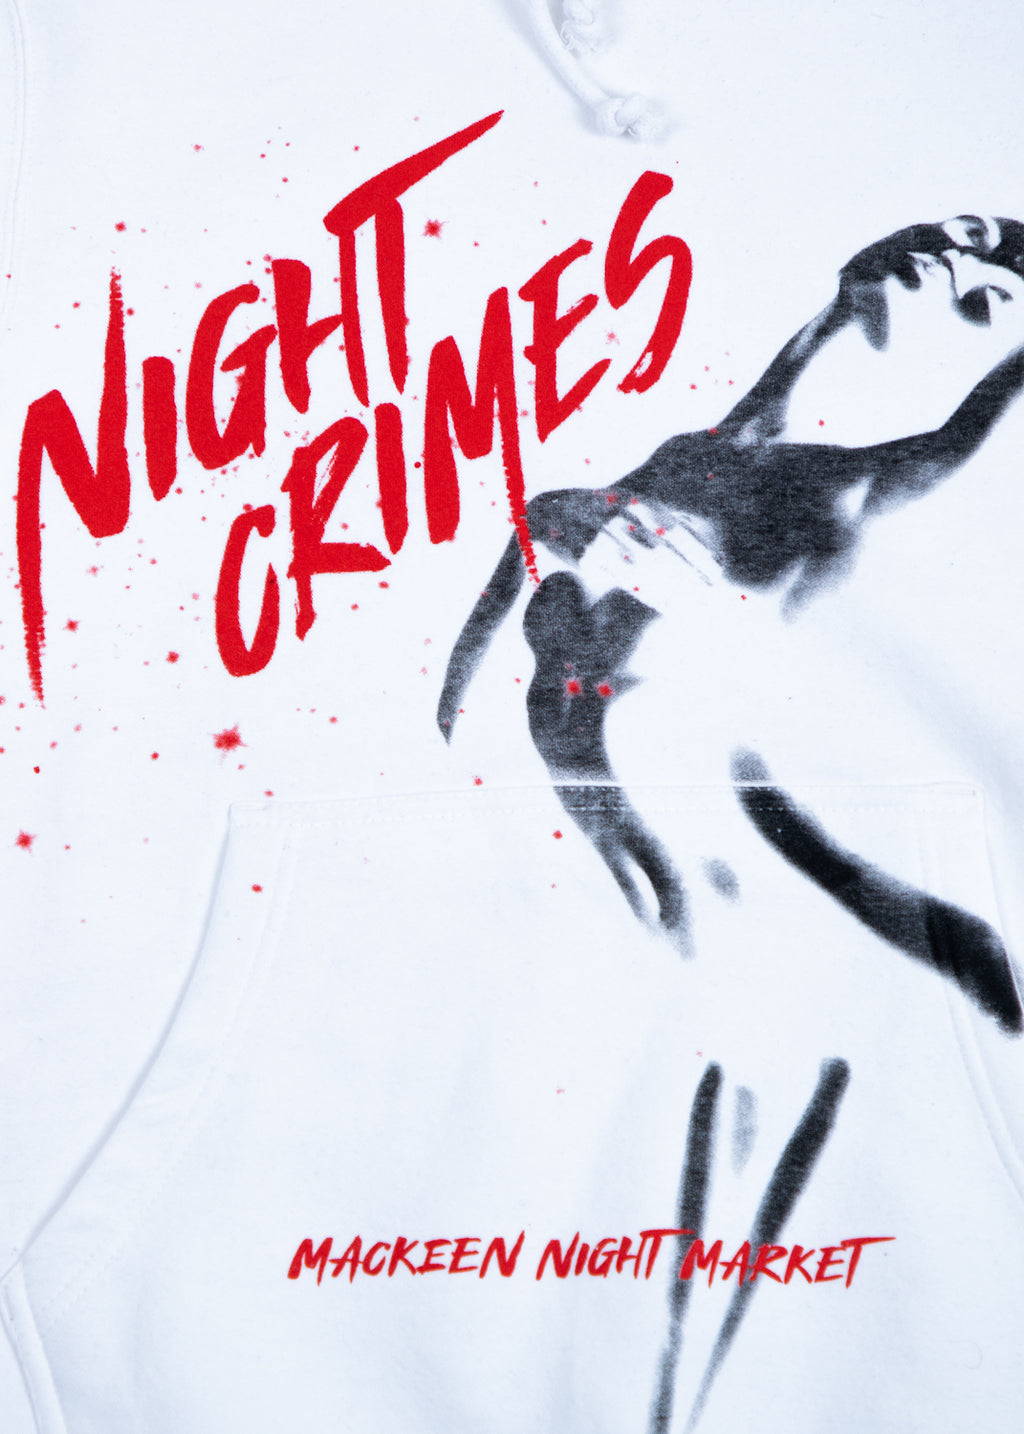 NIGHT CRIMES WHITE HOODIE